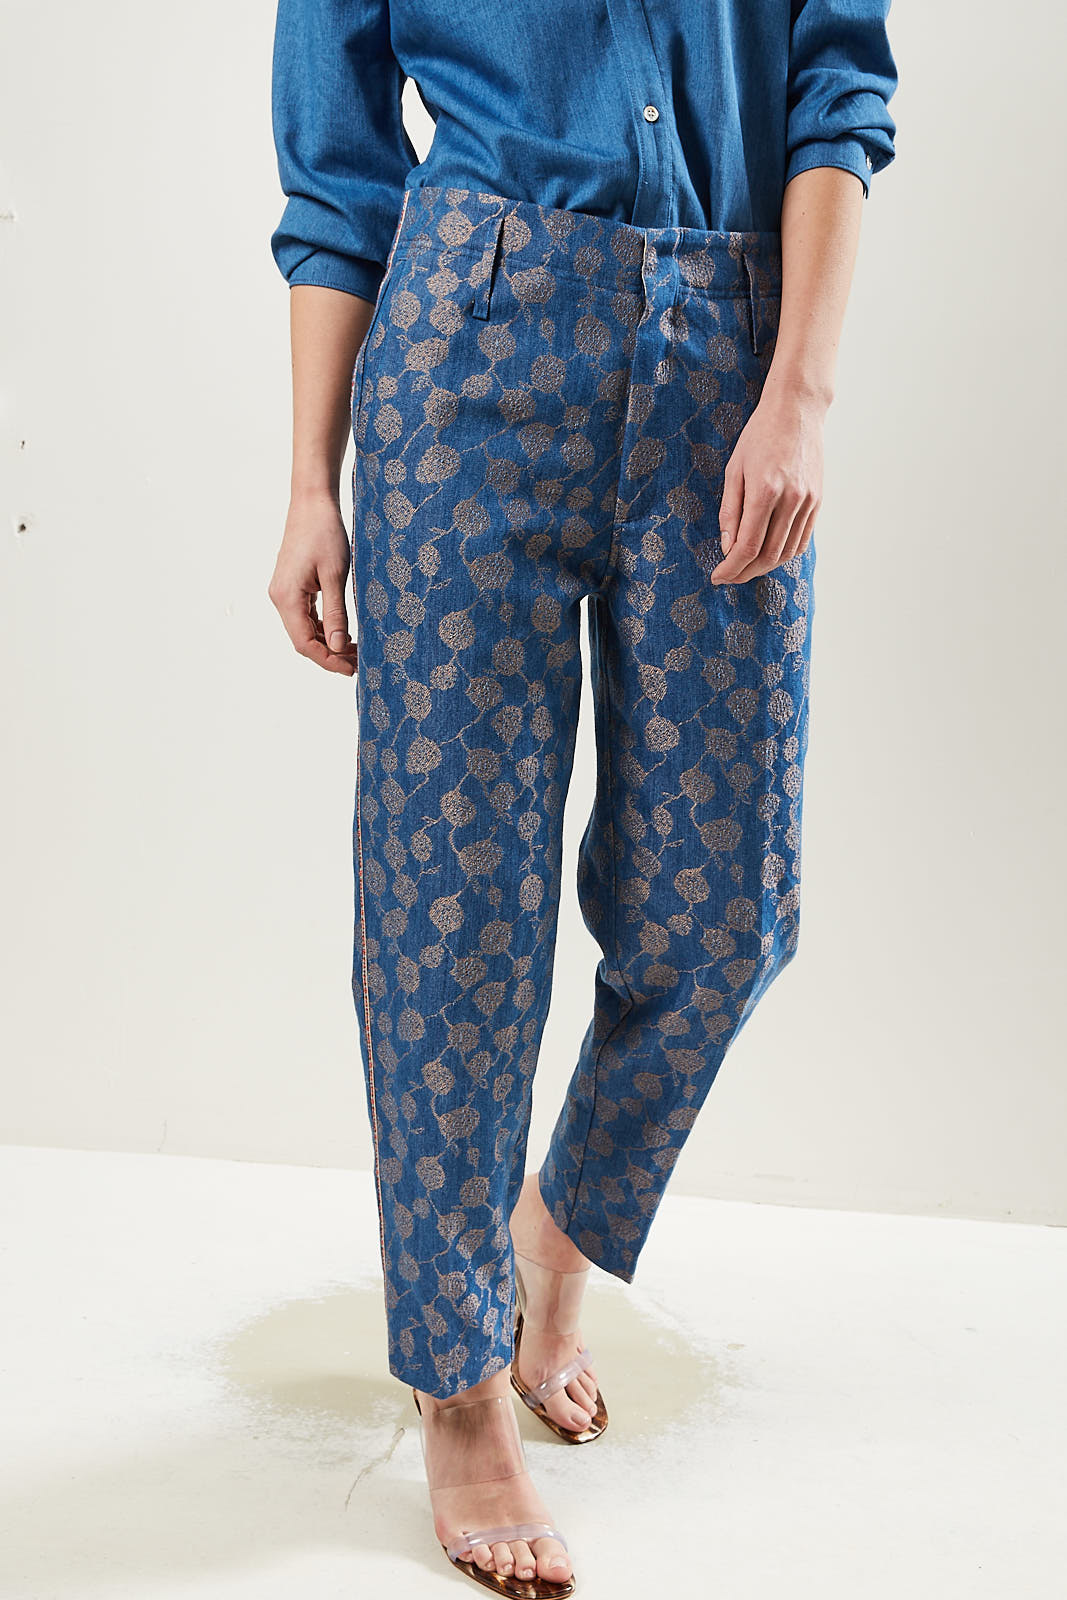 Forte Forte High waisted patterned trousers.